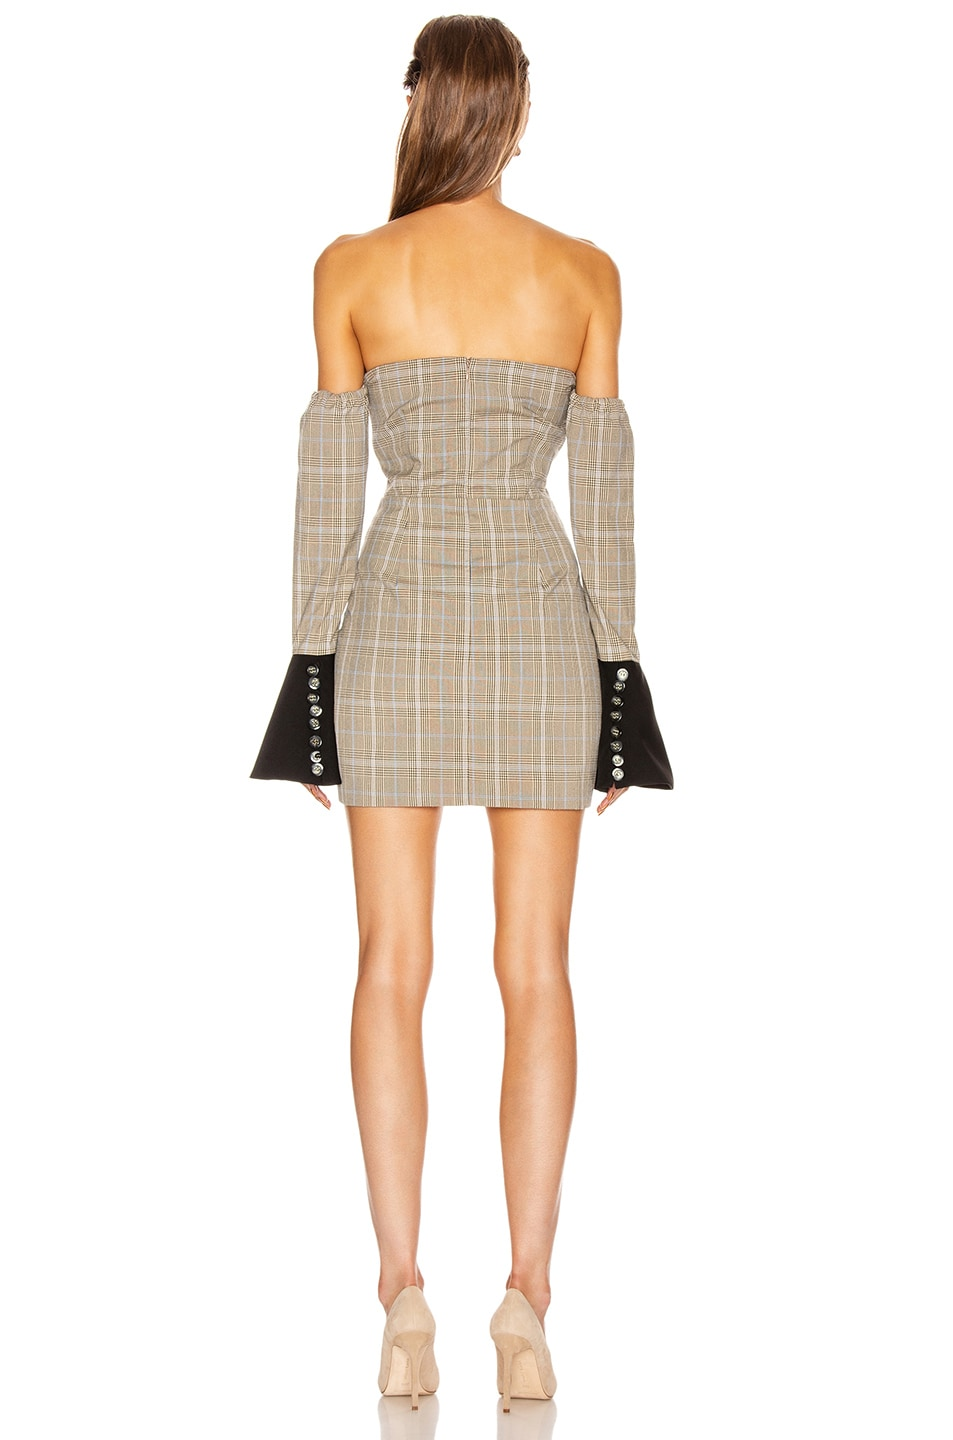 Image 3 of Atoir Sharp Edges Dress in Tan, Blue Check & Black